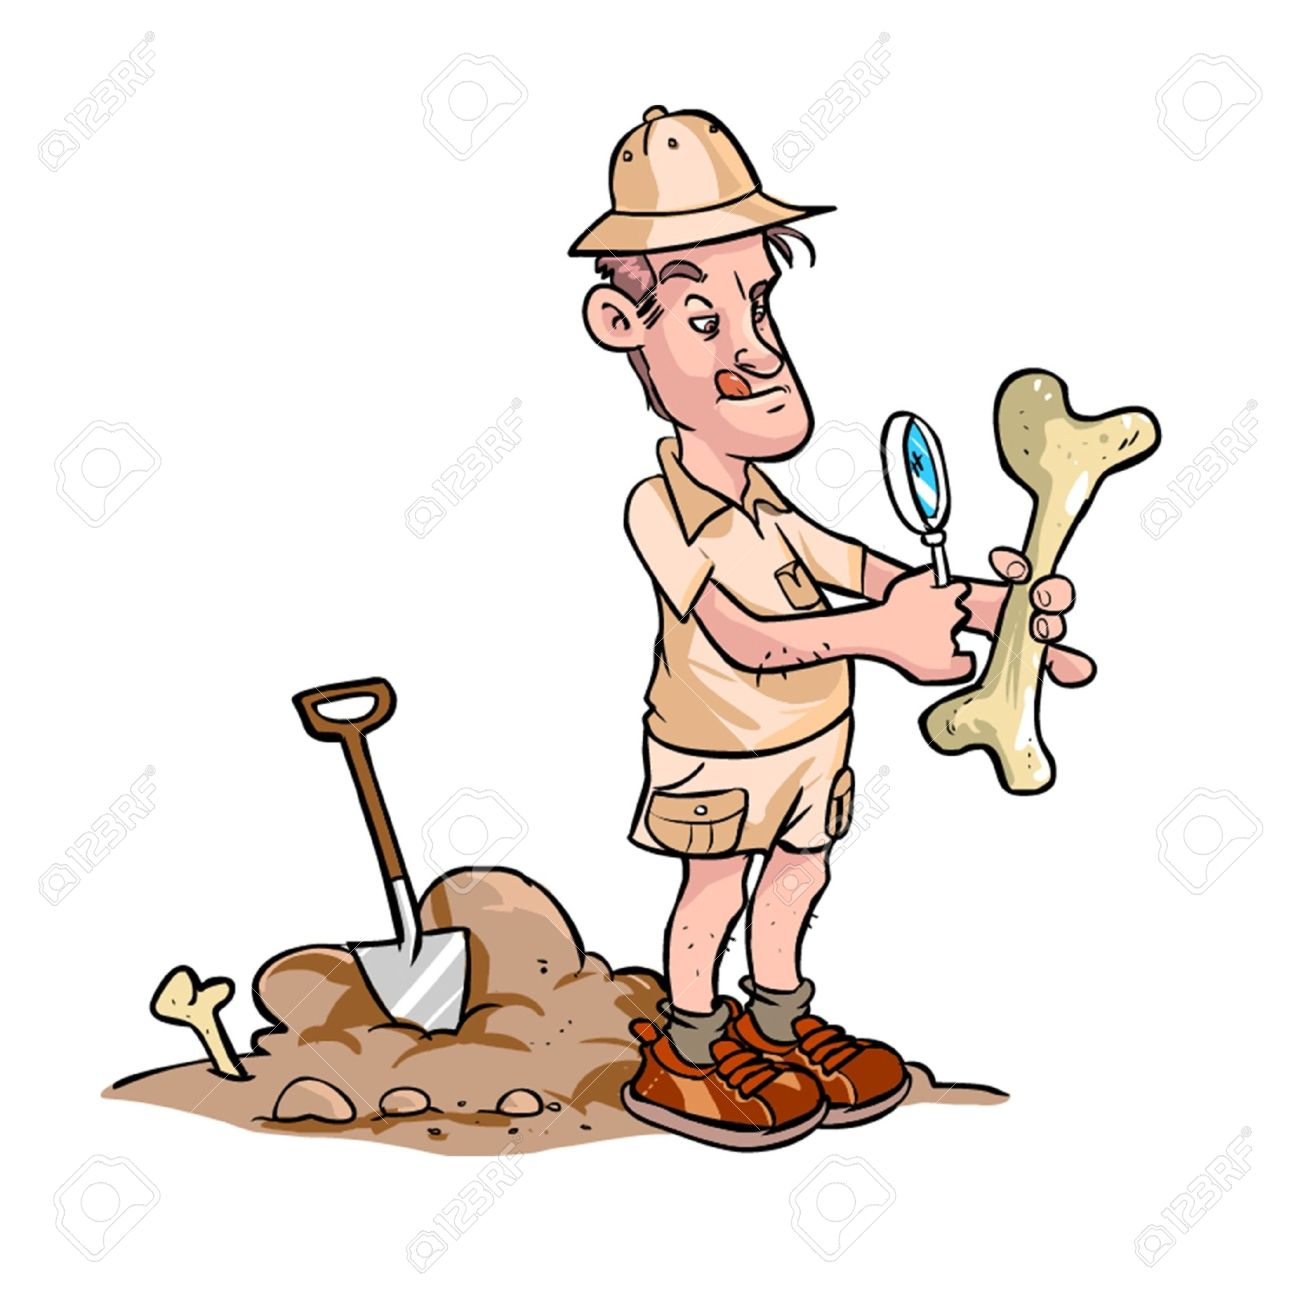 8,695 Archeology Stock Vector Illustration And Royalty Free ...